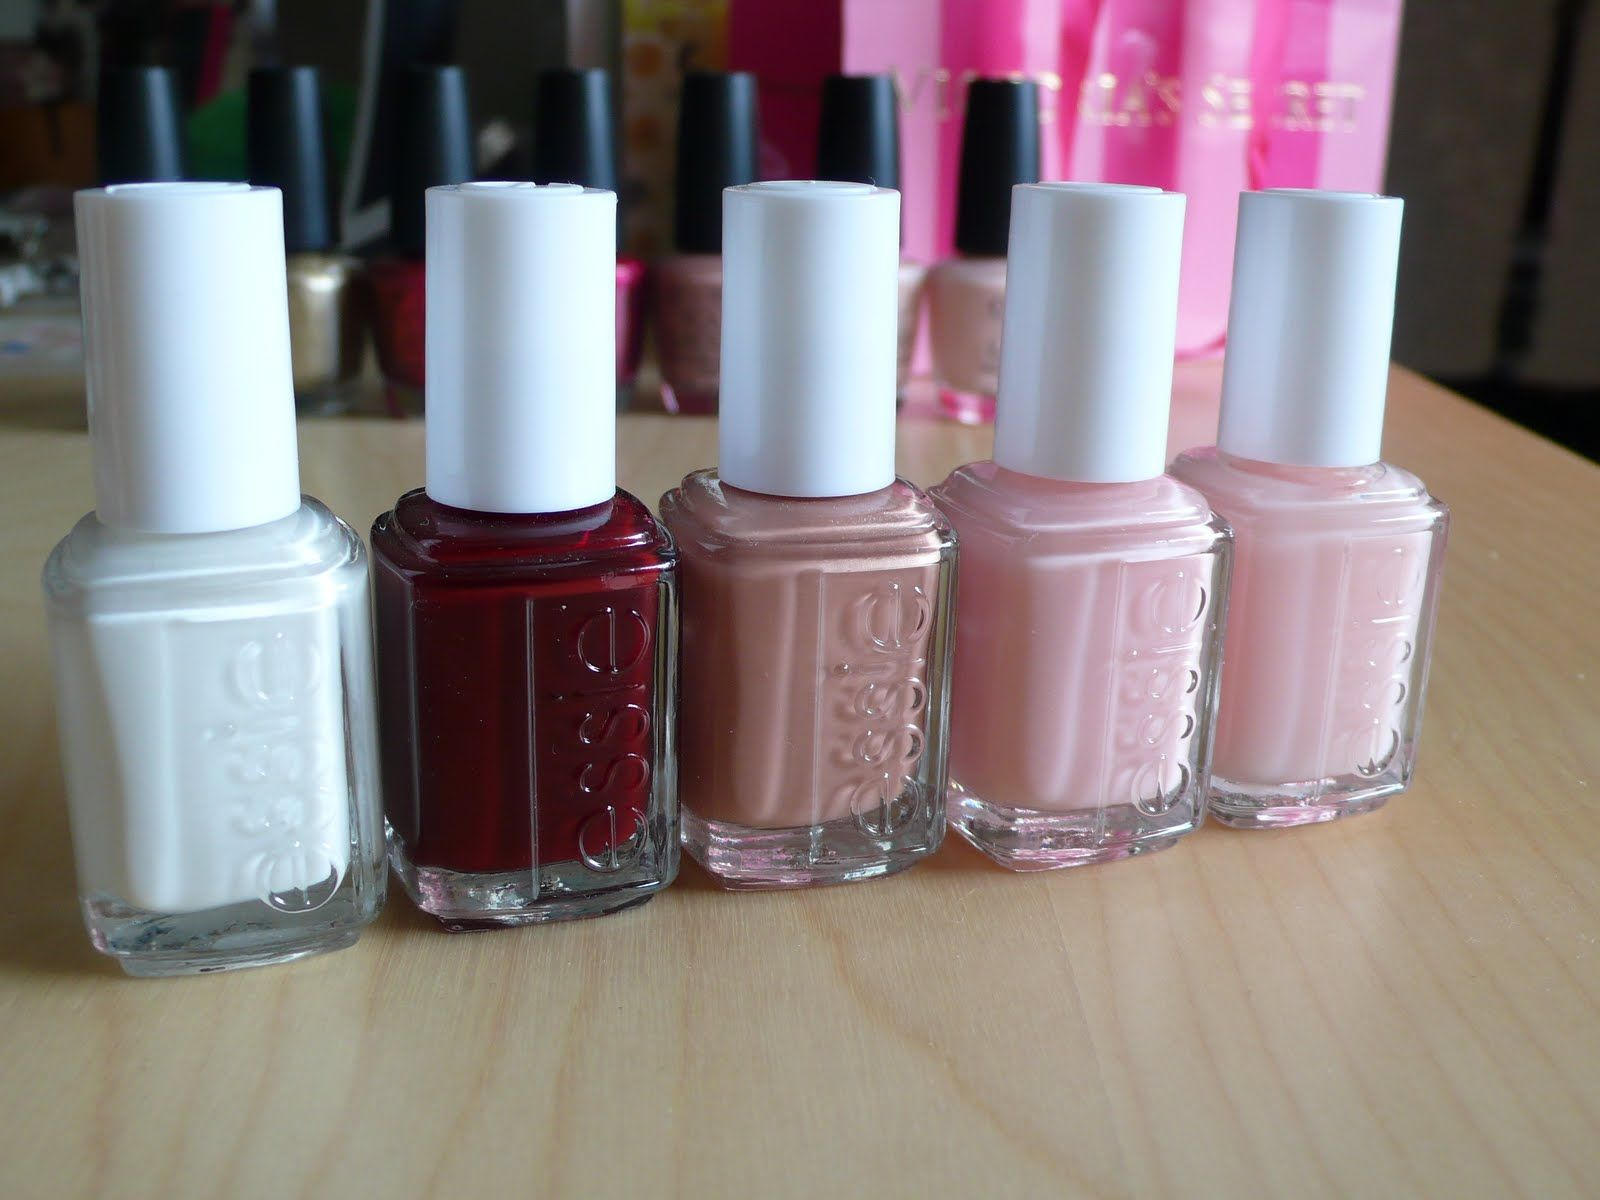 Fishball\'s corner!!: Spring Nails!! OPI and Essie nail polish ...